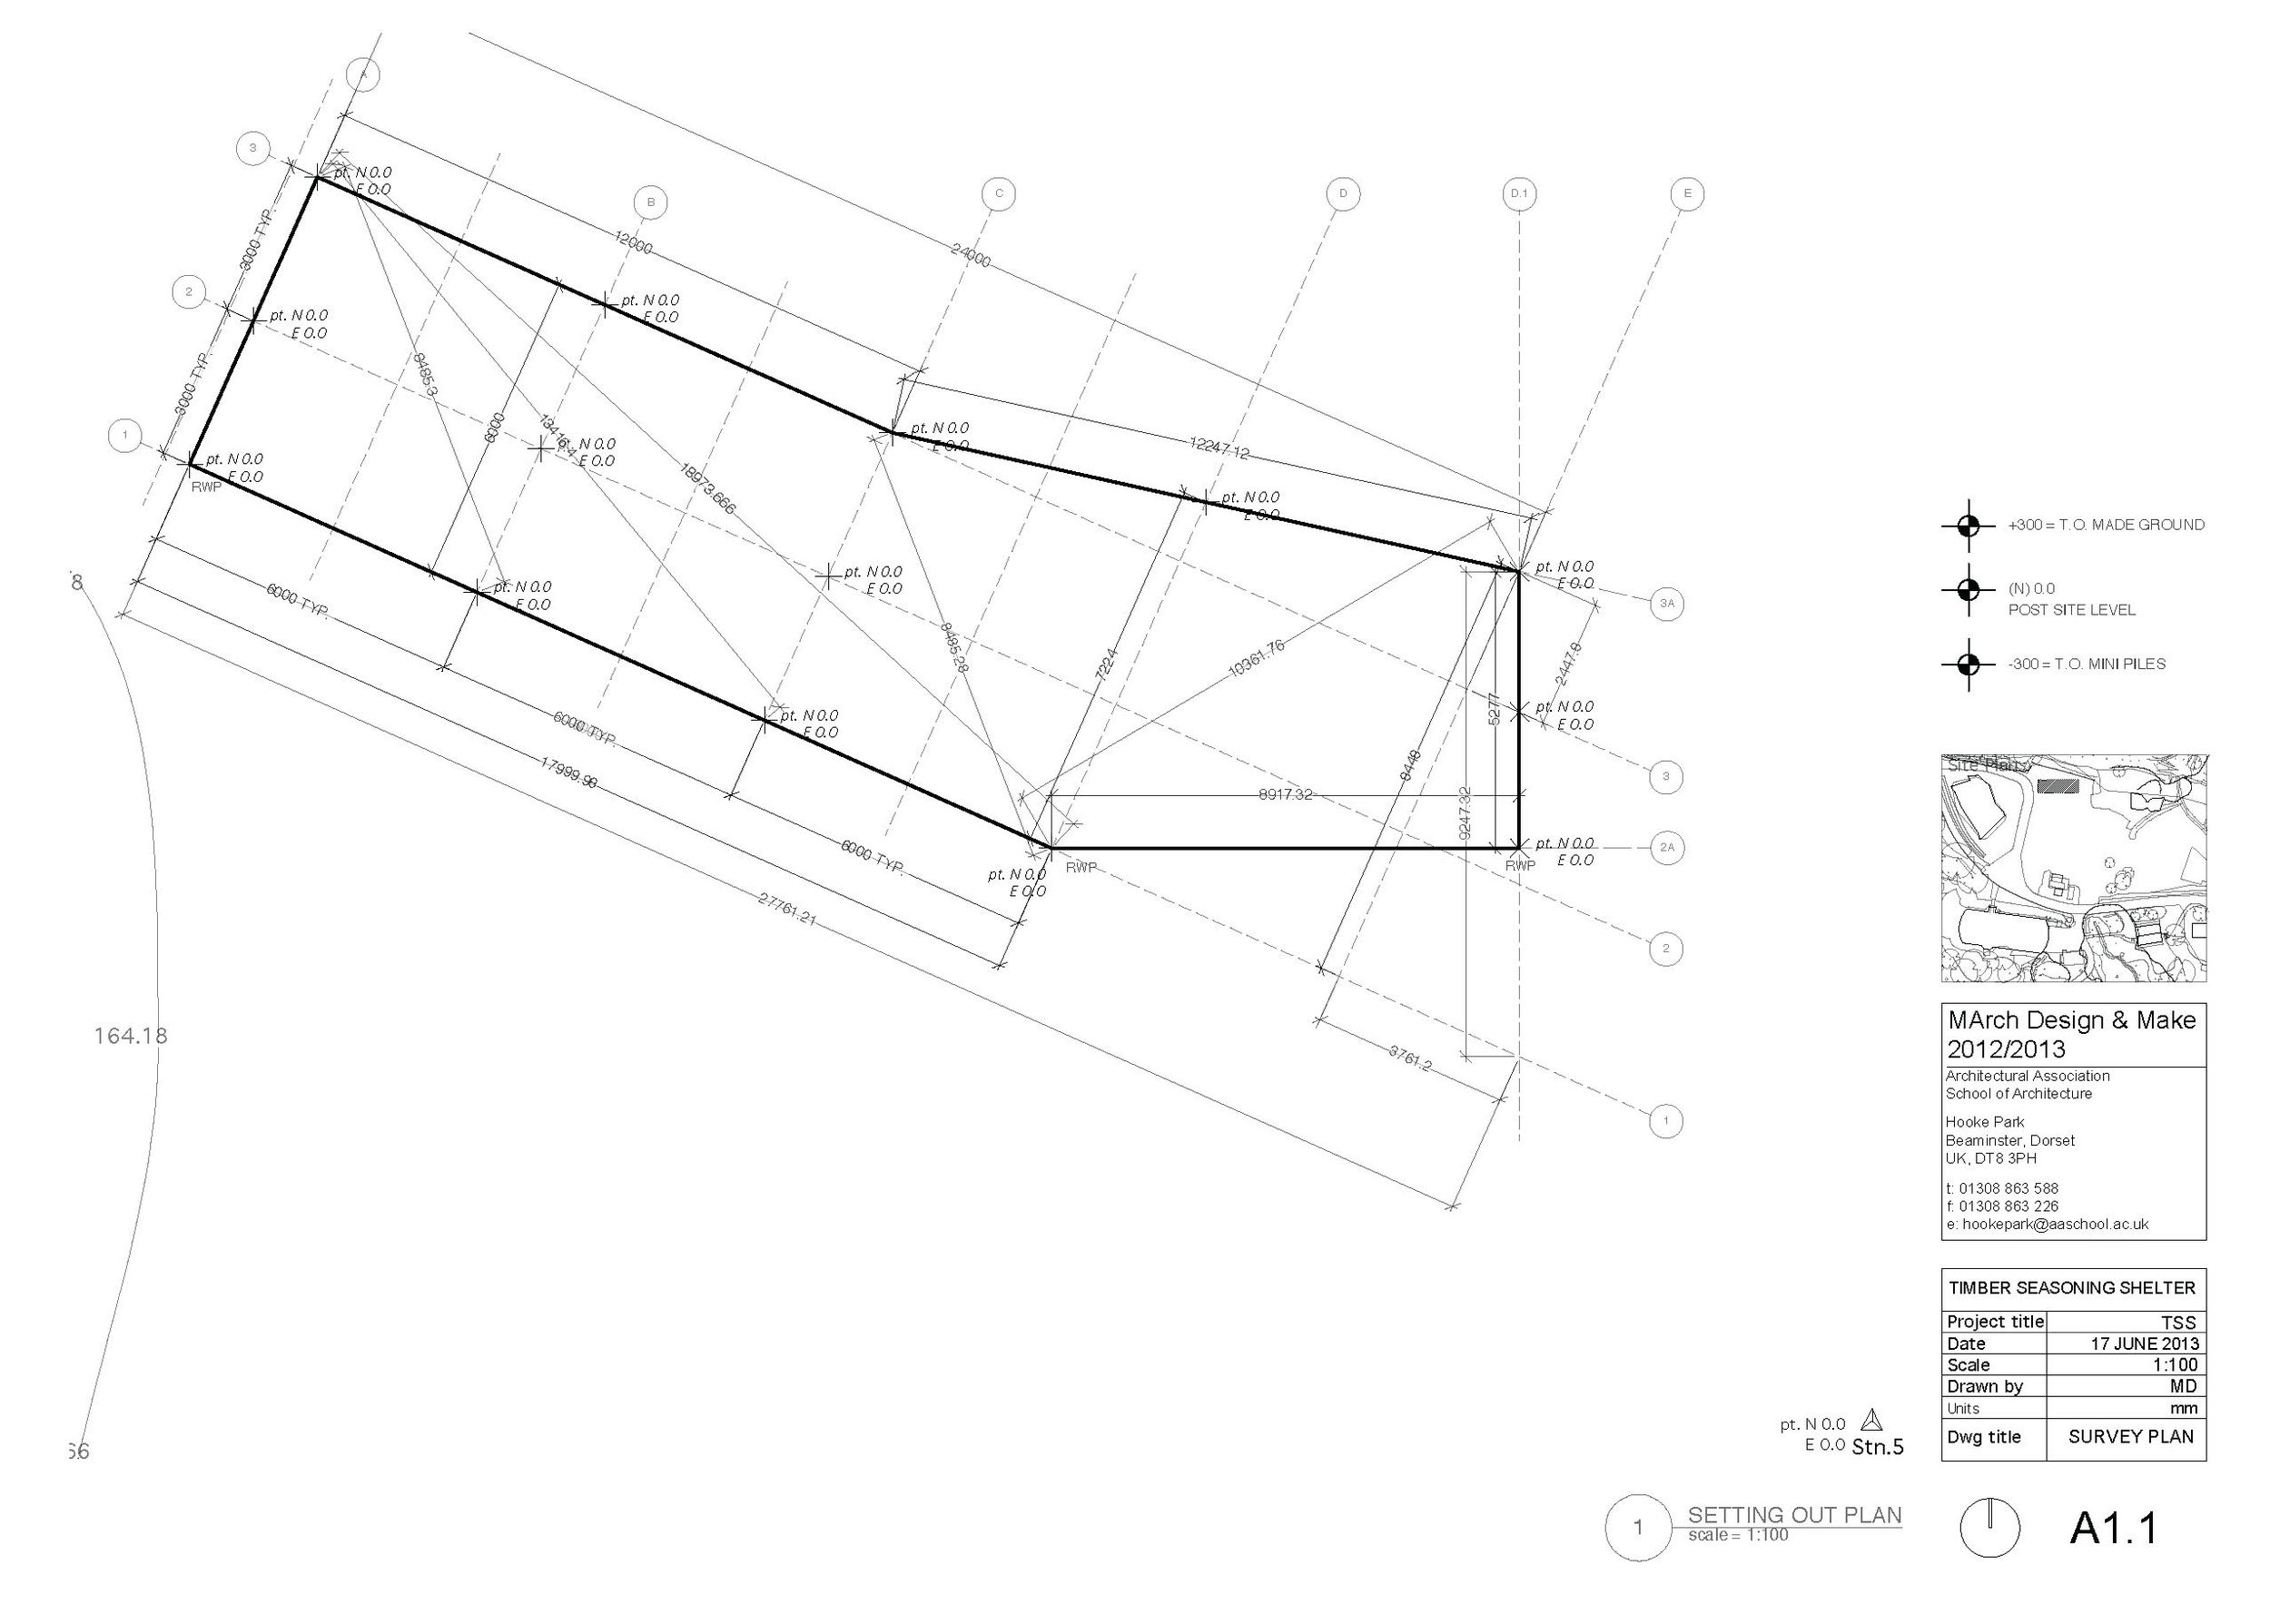 0619_13 TSS SETTING OUT DRAWINGS_Page_03.jpg